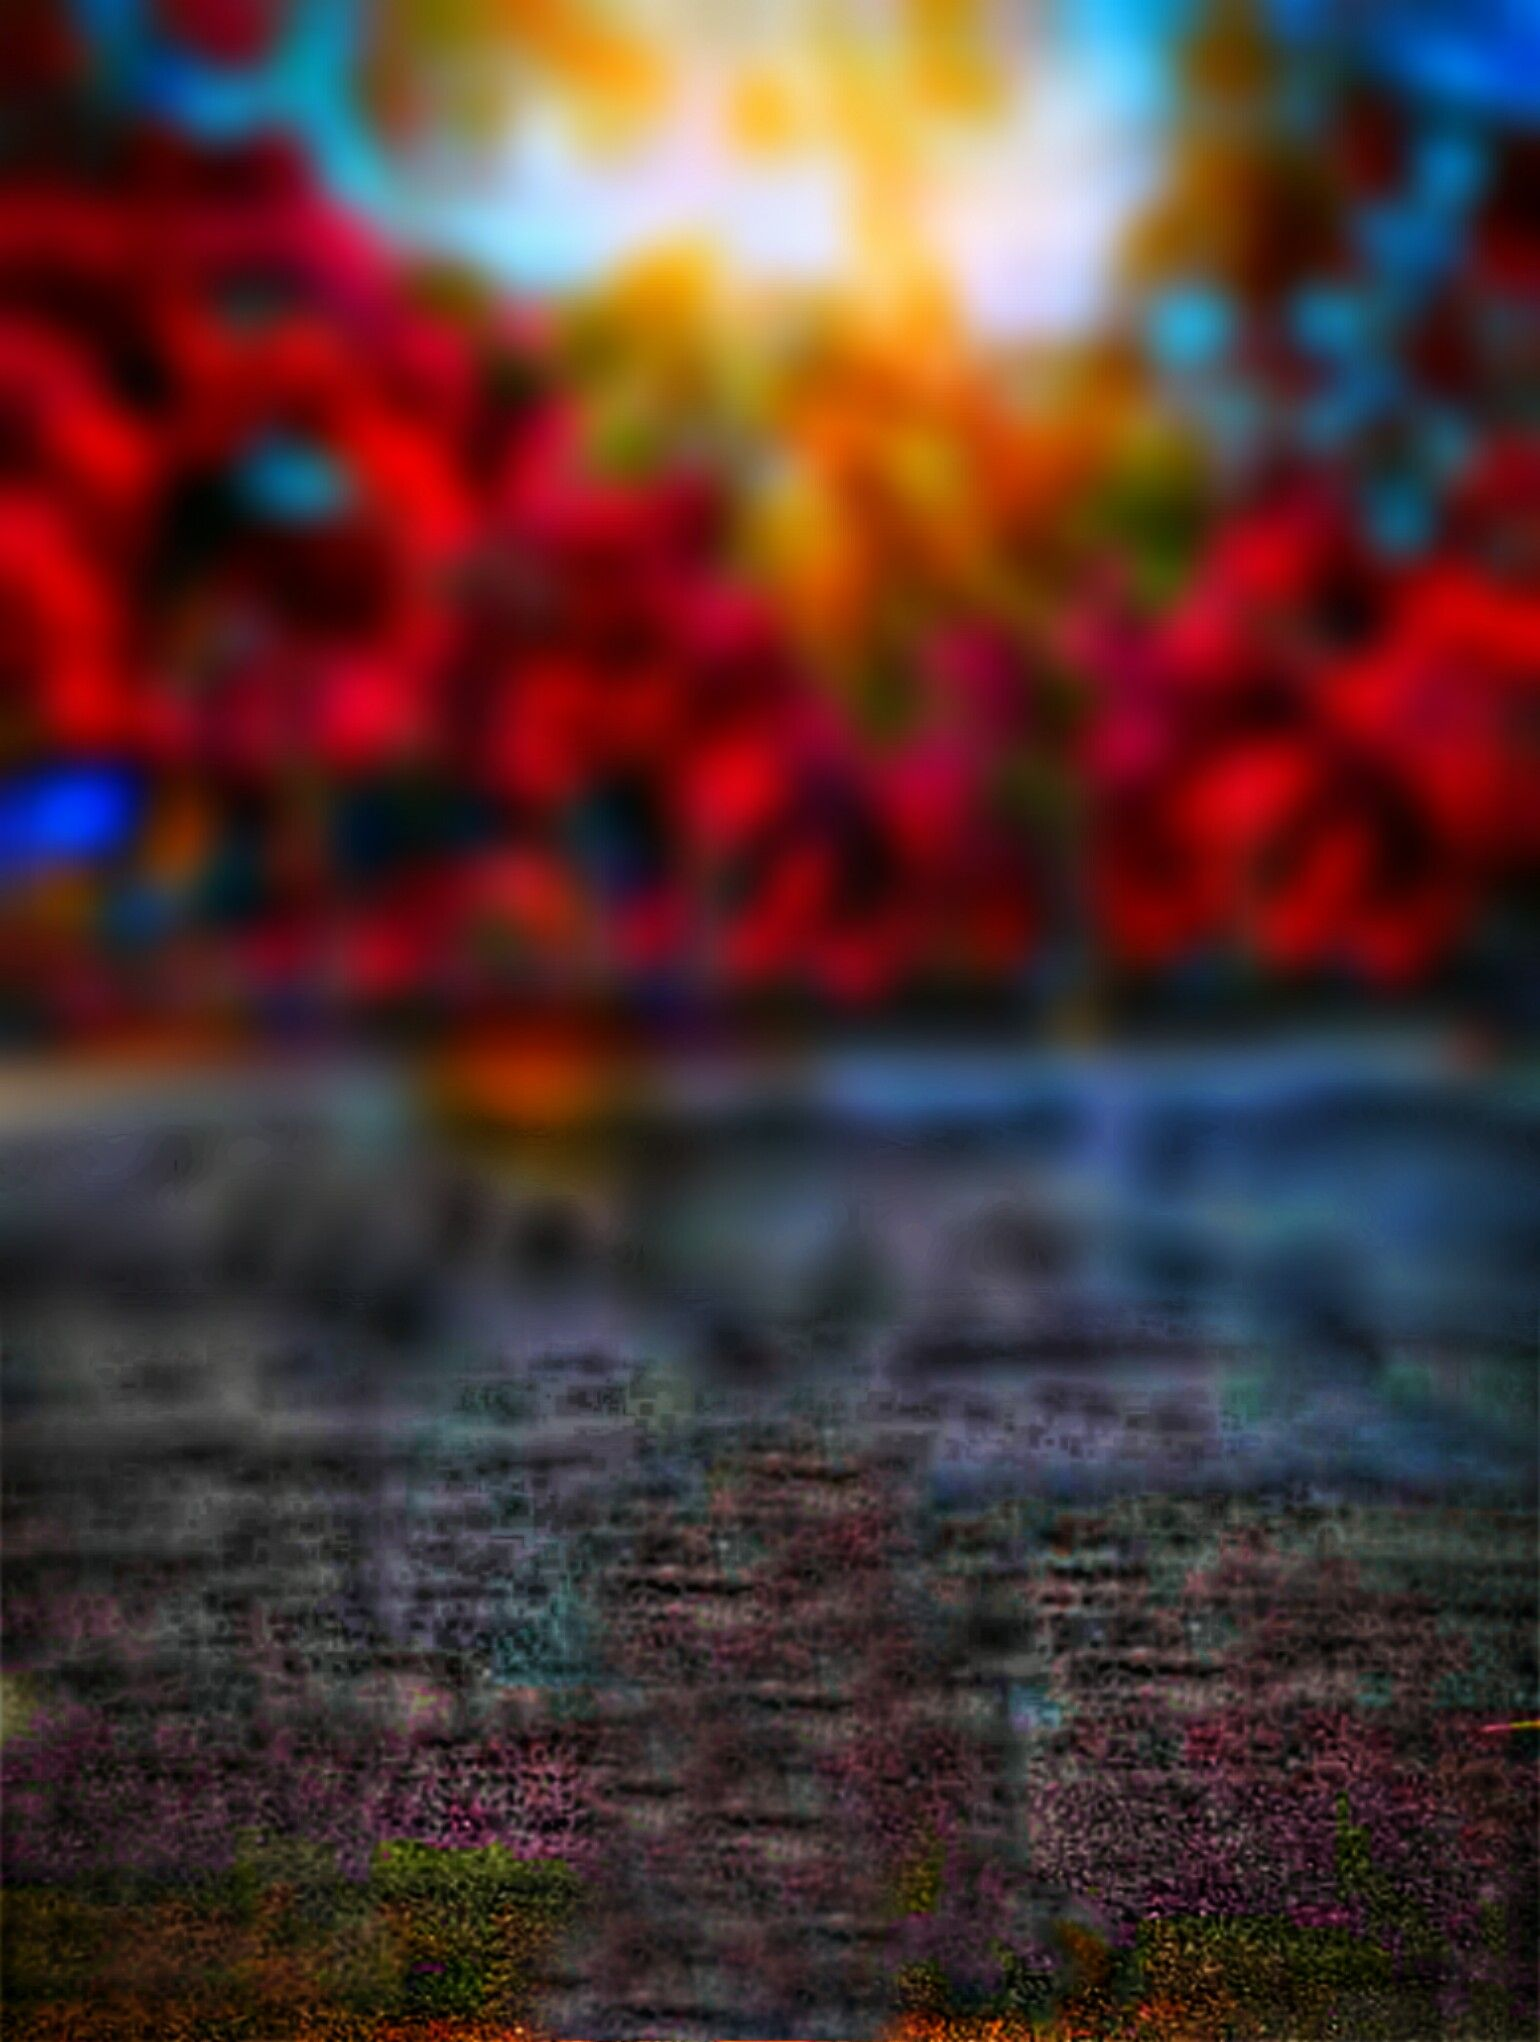 Related Image Blur Image Background Photo Background Images Blur Photo Background